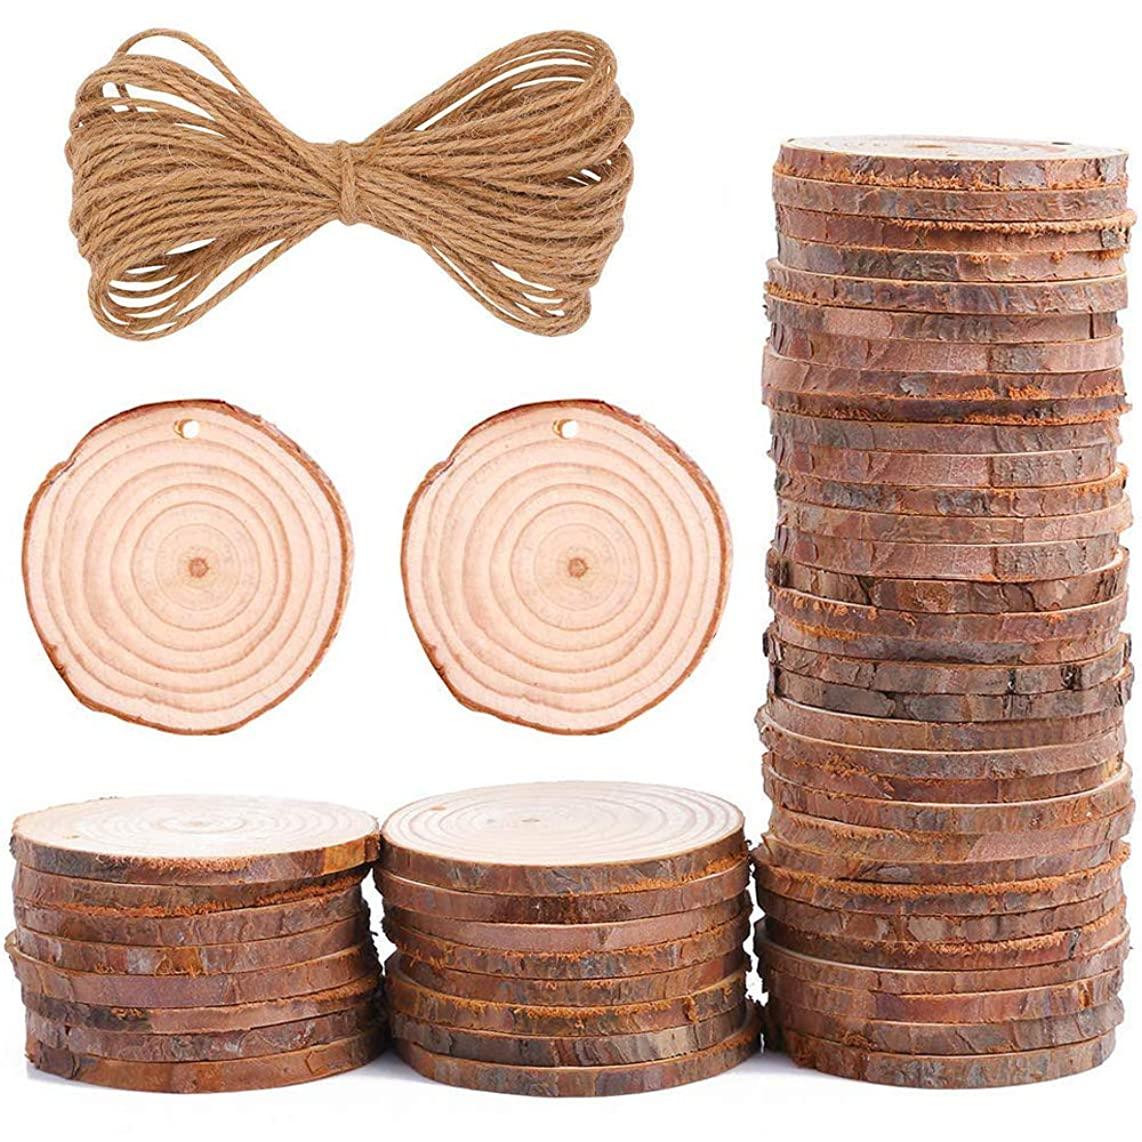 50pcs 1.9-2.4 inch Unfinished Natural Wood Slices with Holes and 33 Feet Natural Jute Twine for DIY Crafts Centerpieces